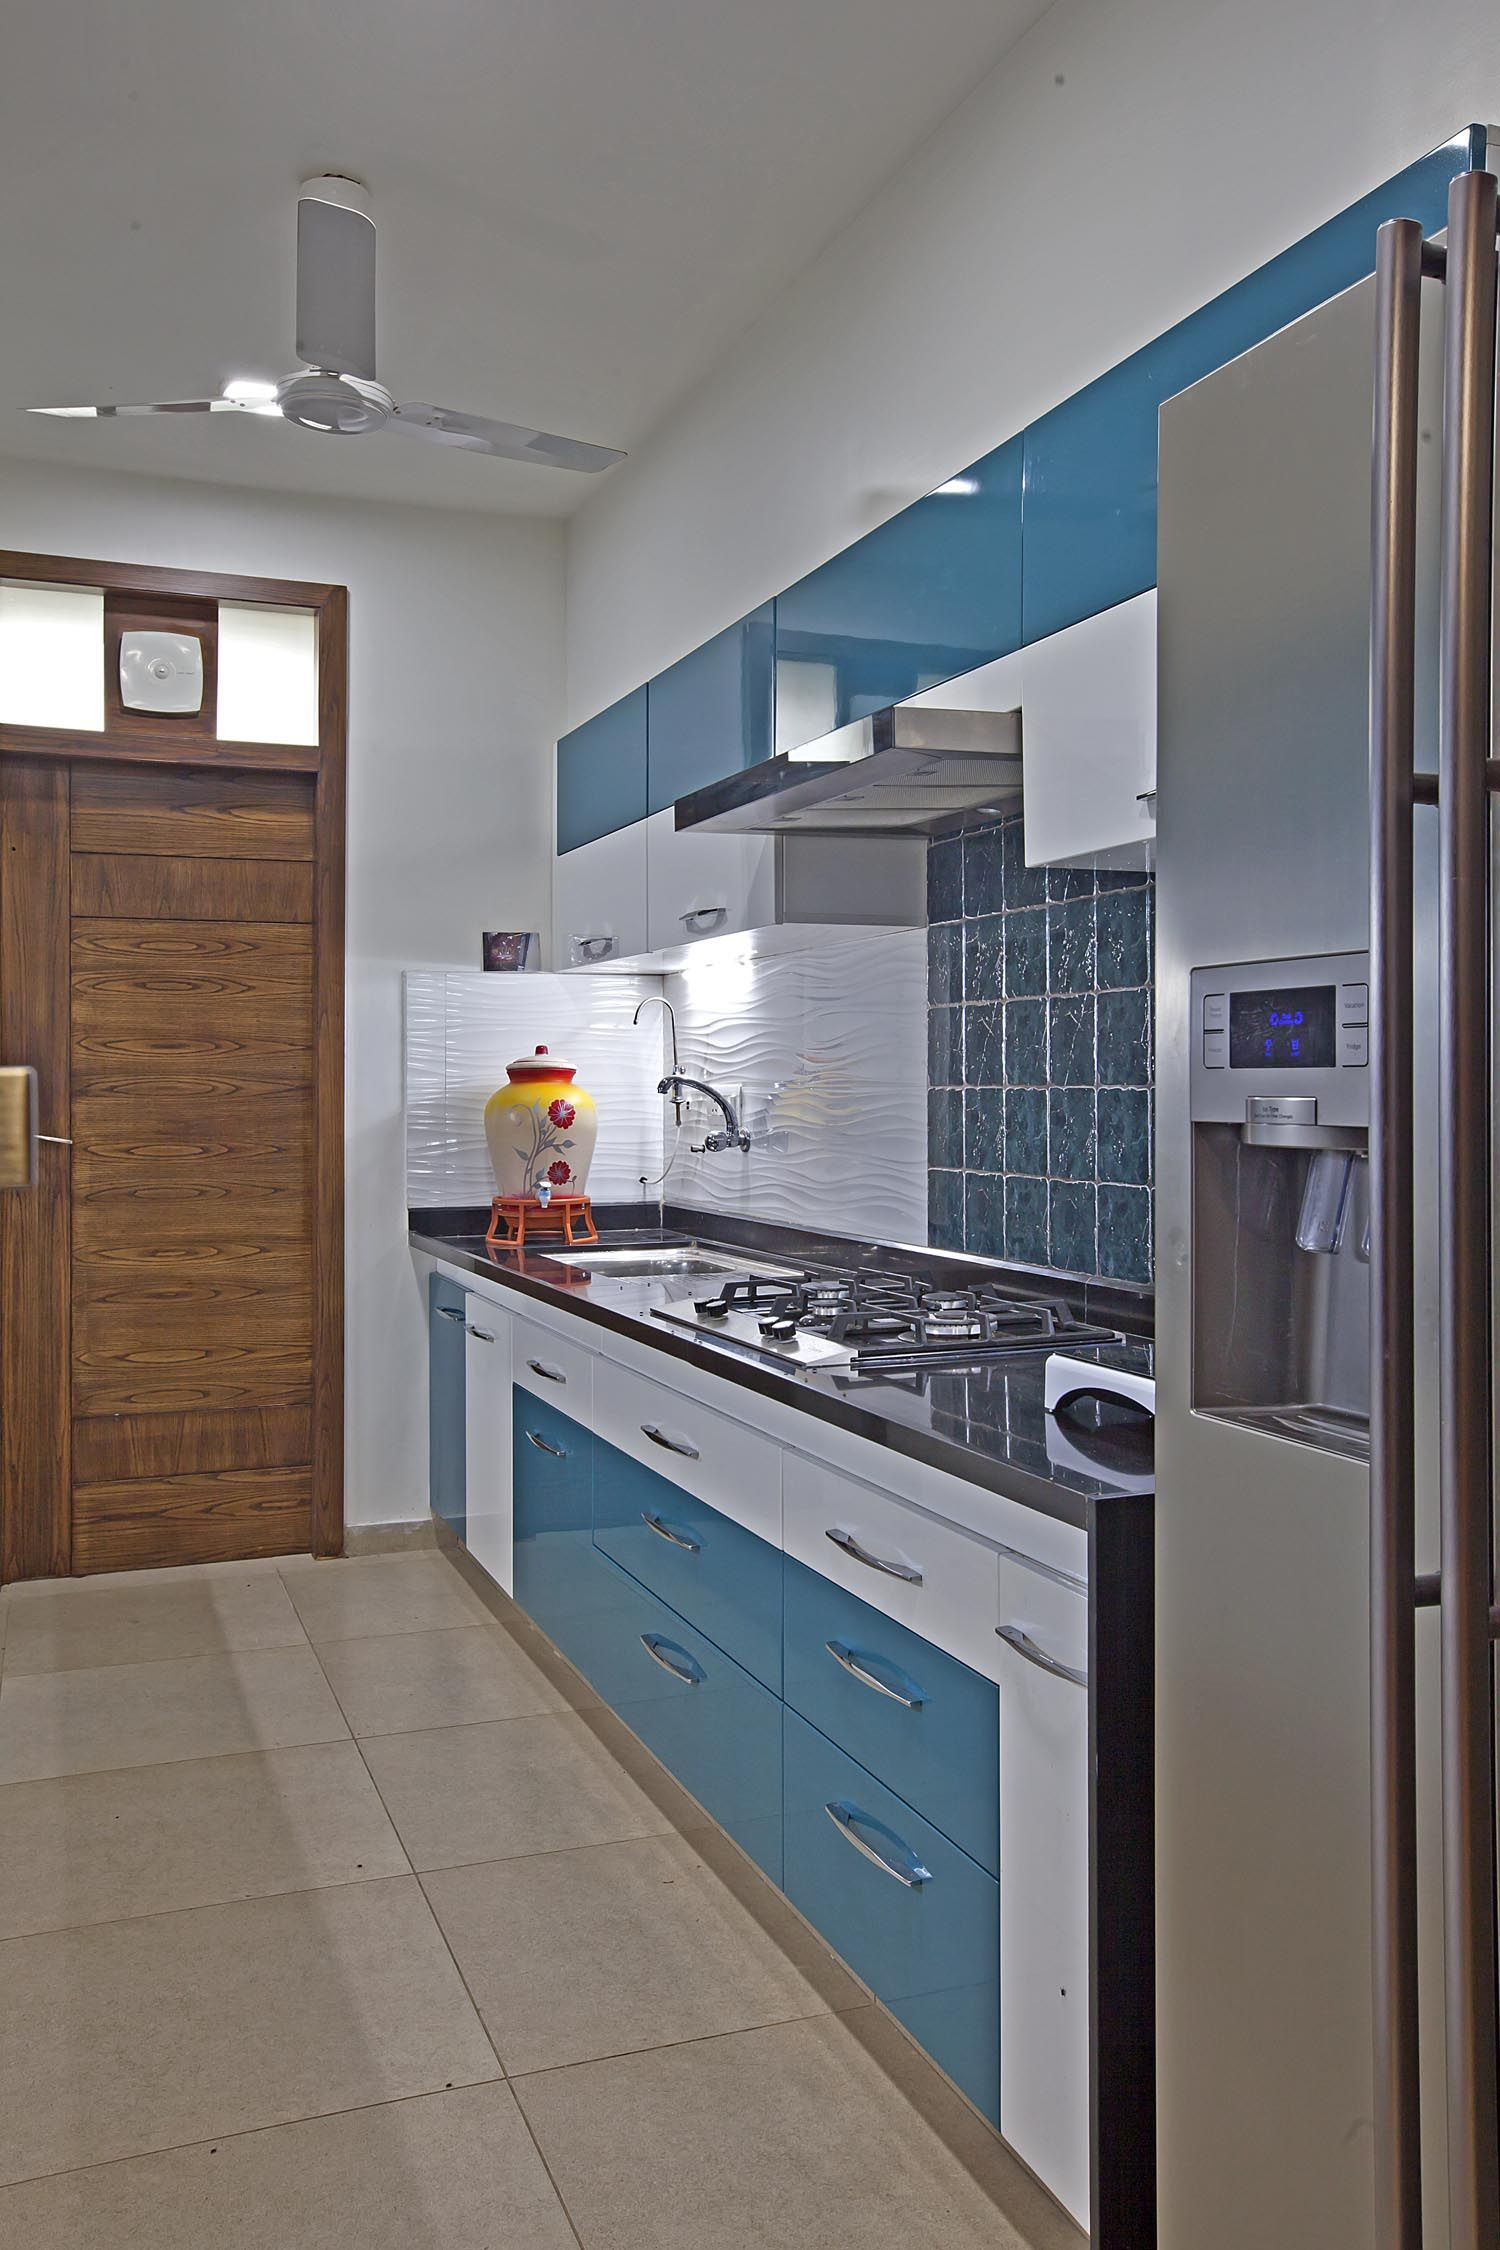 Small Kitchens May Seem To Be A Very Difficult Design Challenge